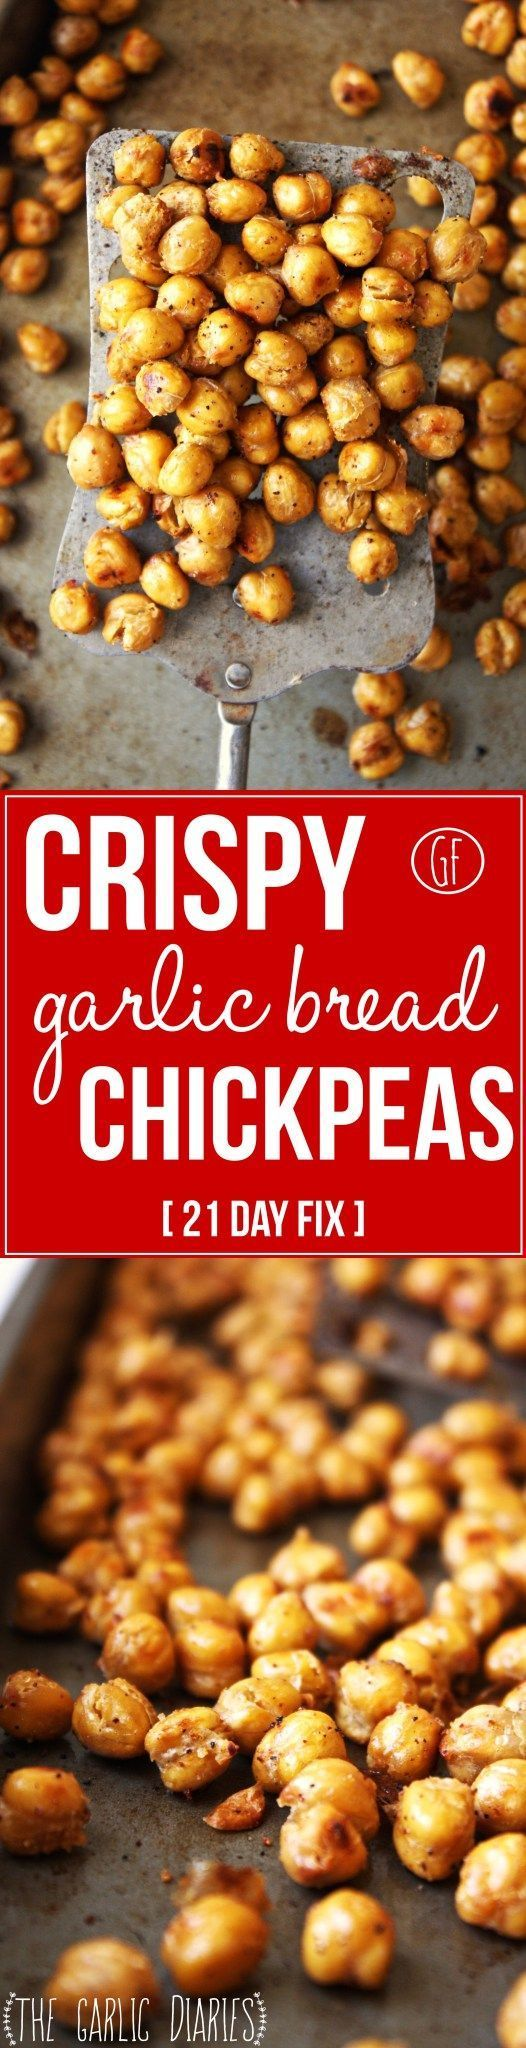 Crispy Garlic Bread Chickpeas [21 Day Fix] - Craving that salty, crunchy snack but don't want to fill your body with unhealthy, processed food? Look no further! These crunchy roasted chickpeas will satisfy any craving. Gluten free